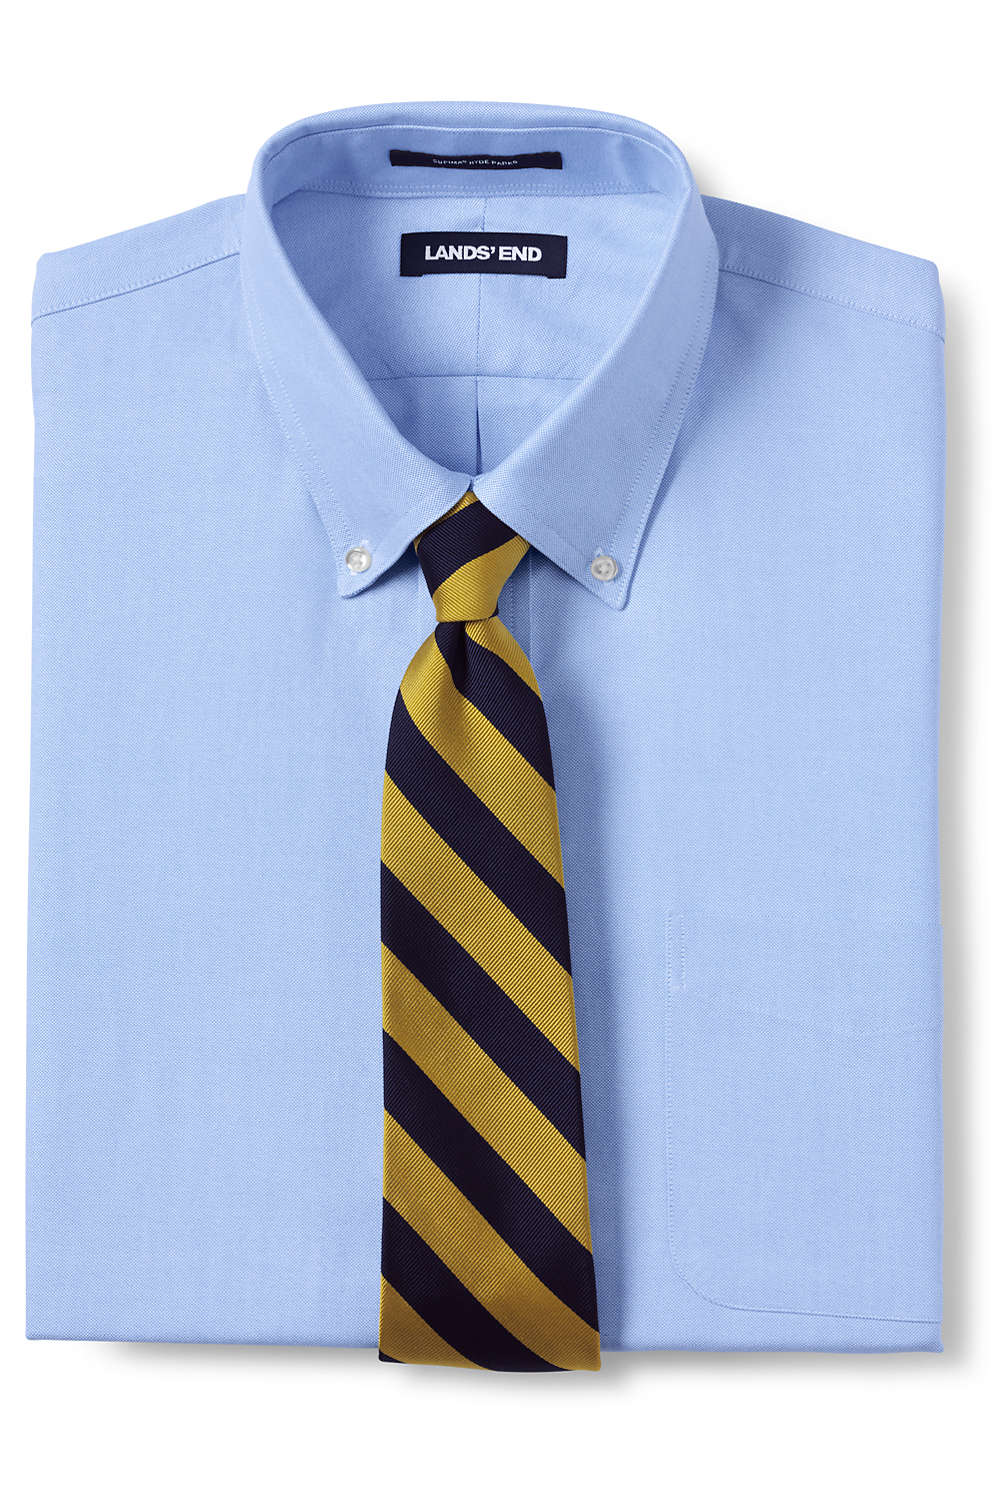 Mens Supima Hyde Park Oxford Dress Shirt From Lands End